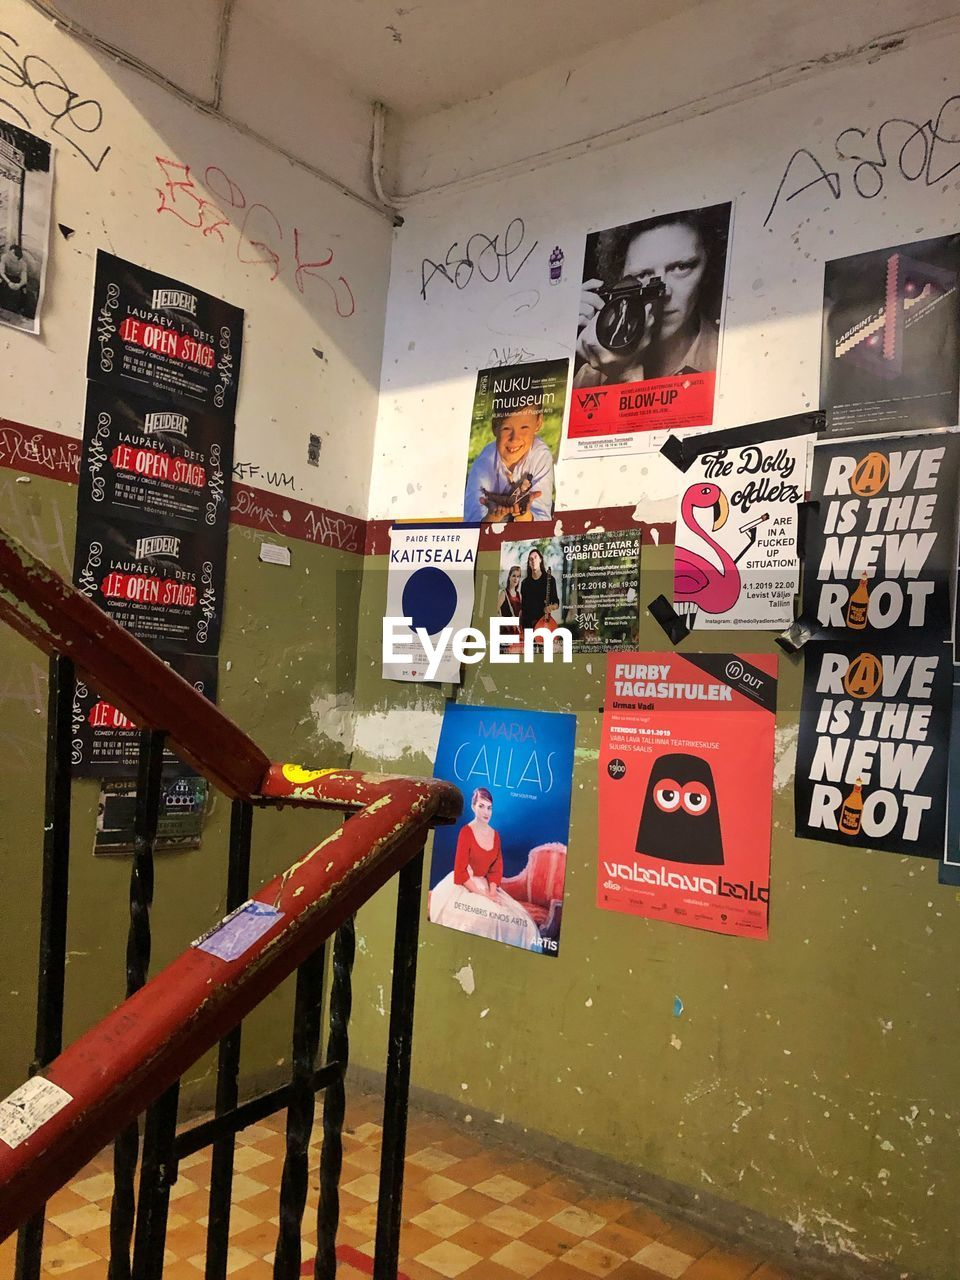 communication, text, no people, indoors, western script, architecture, multi colored, sign, wall - building feature, built structure, railing, graffiti, creativity, art and craft, poster, education, safety, barrier, metal, message, ceiling